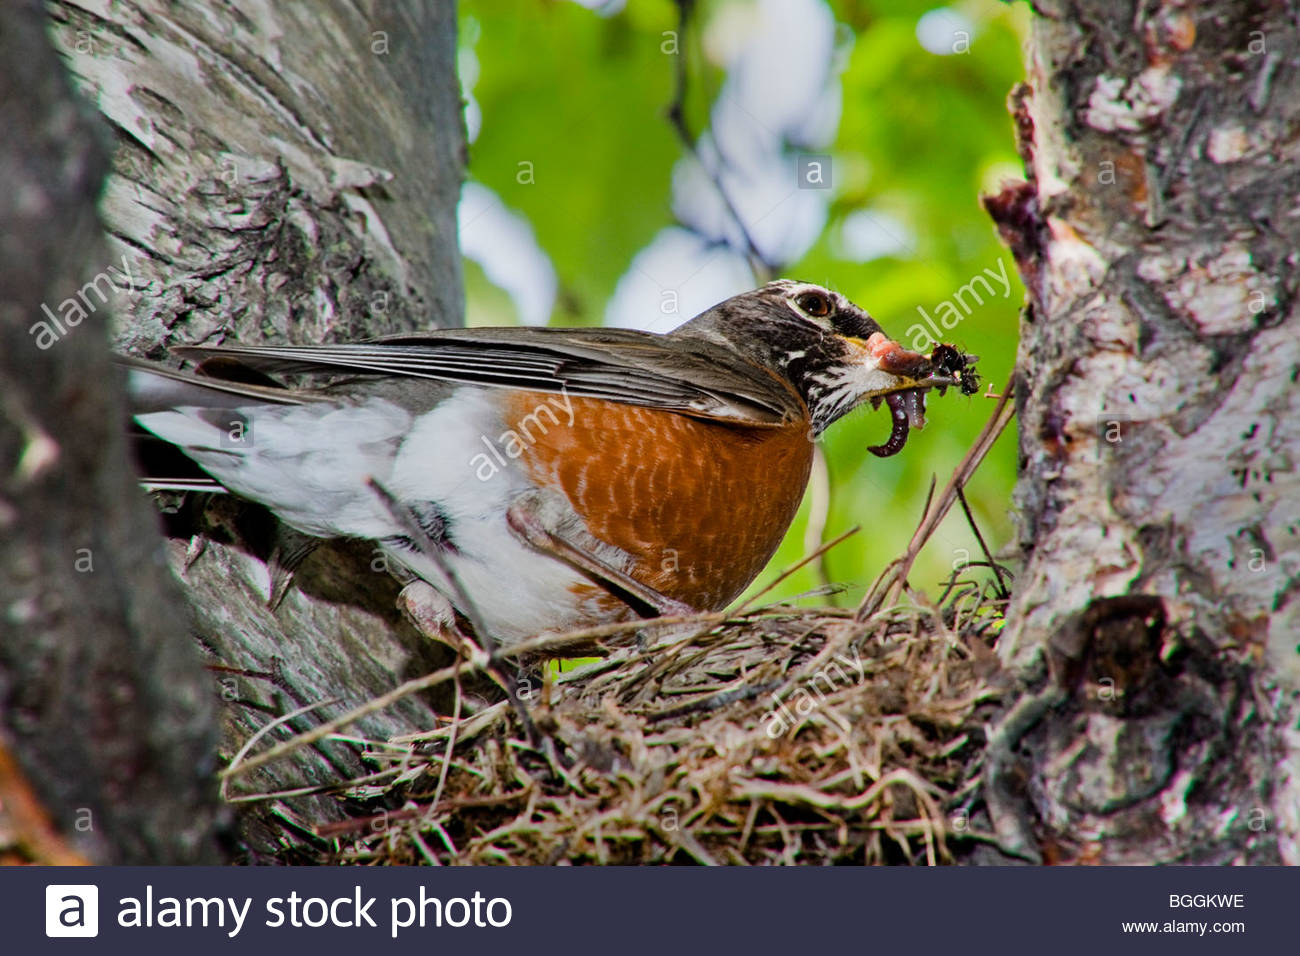 Adult male robin ( Turdus migratorius) in breeding plumage arrives at the edge of a nest of new hatchlings with - Stock Image